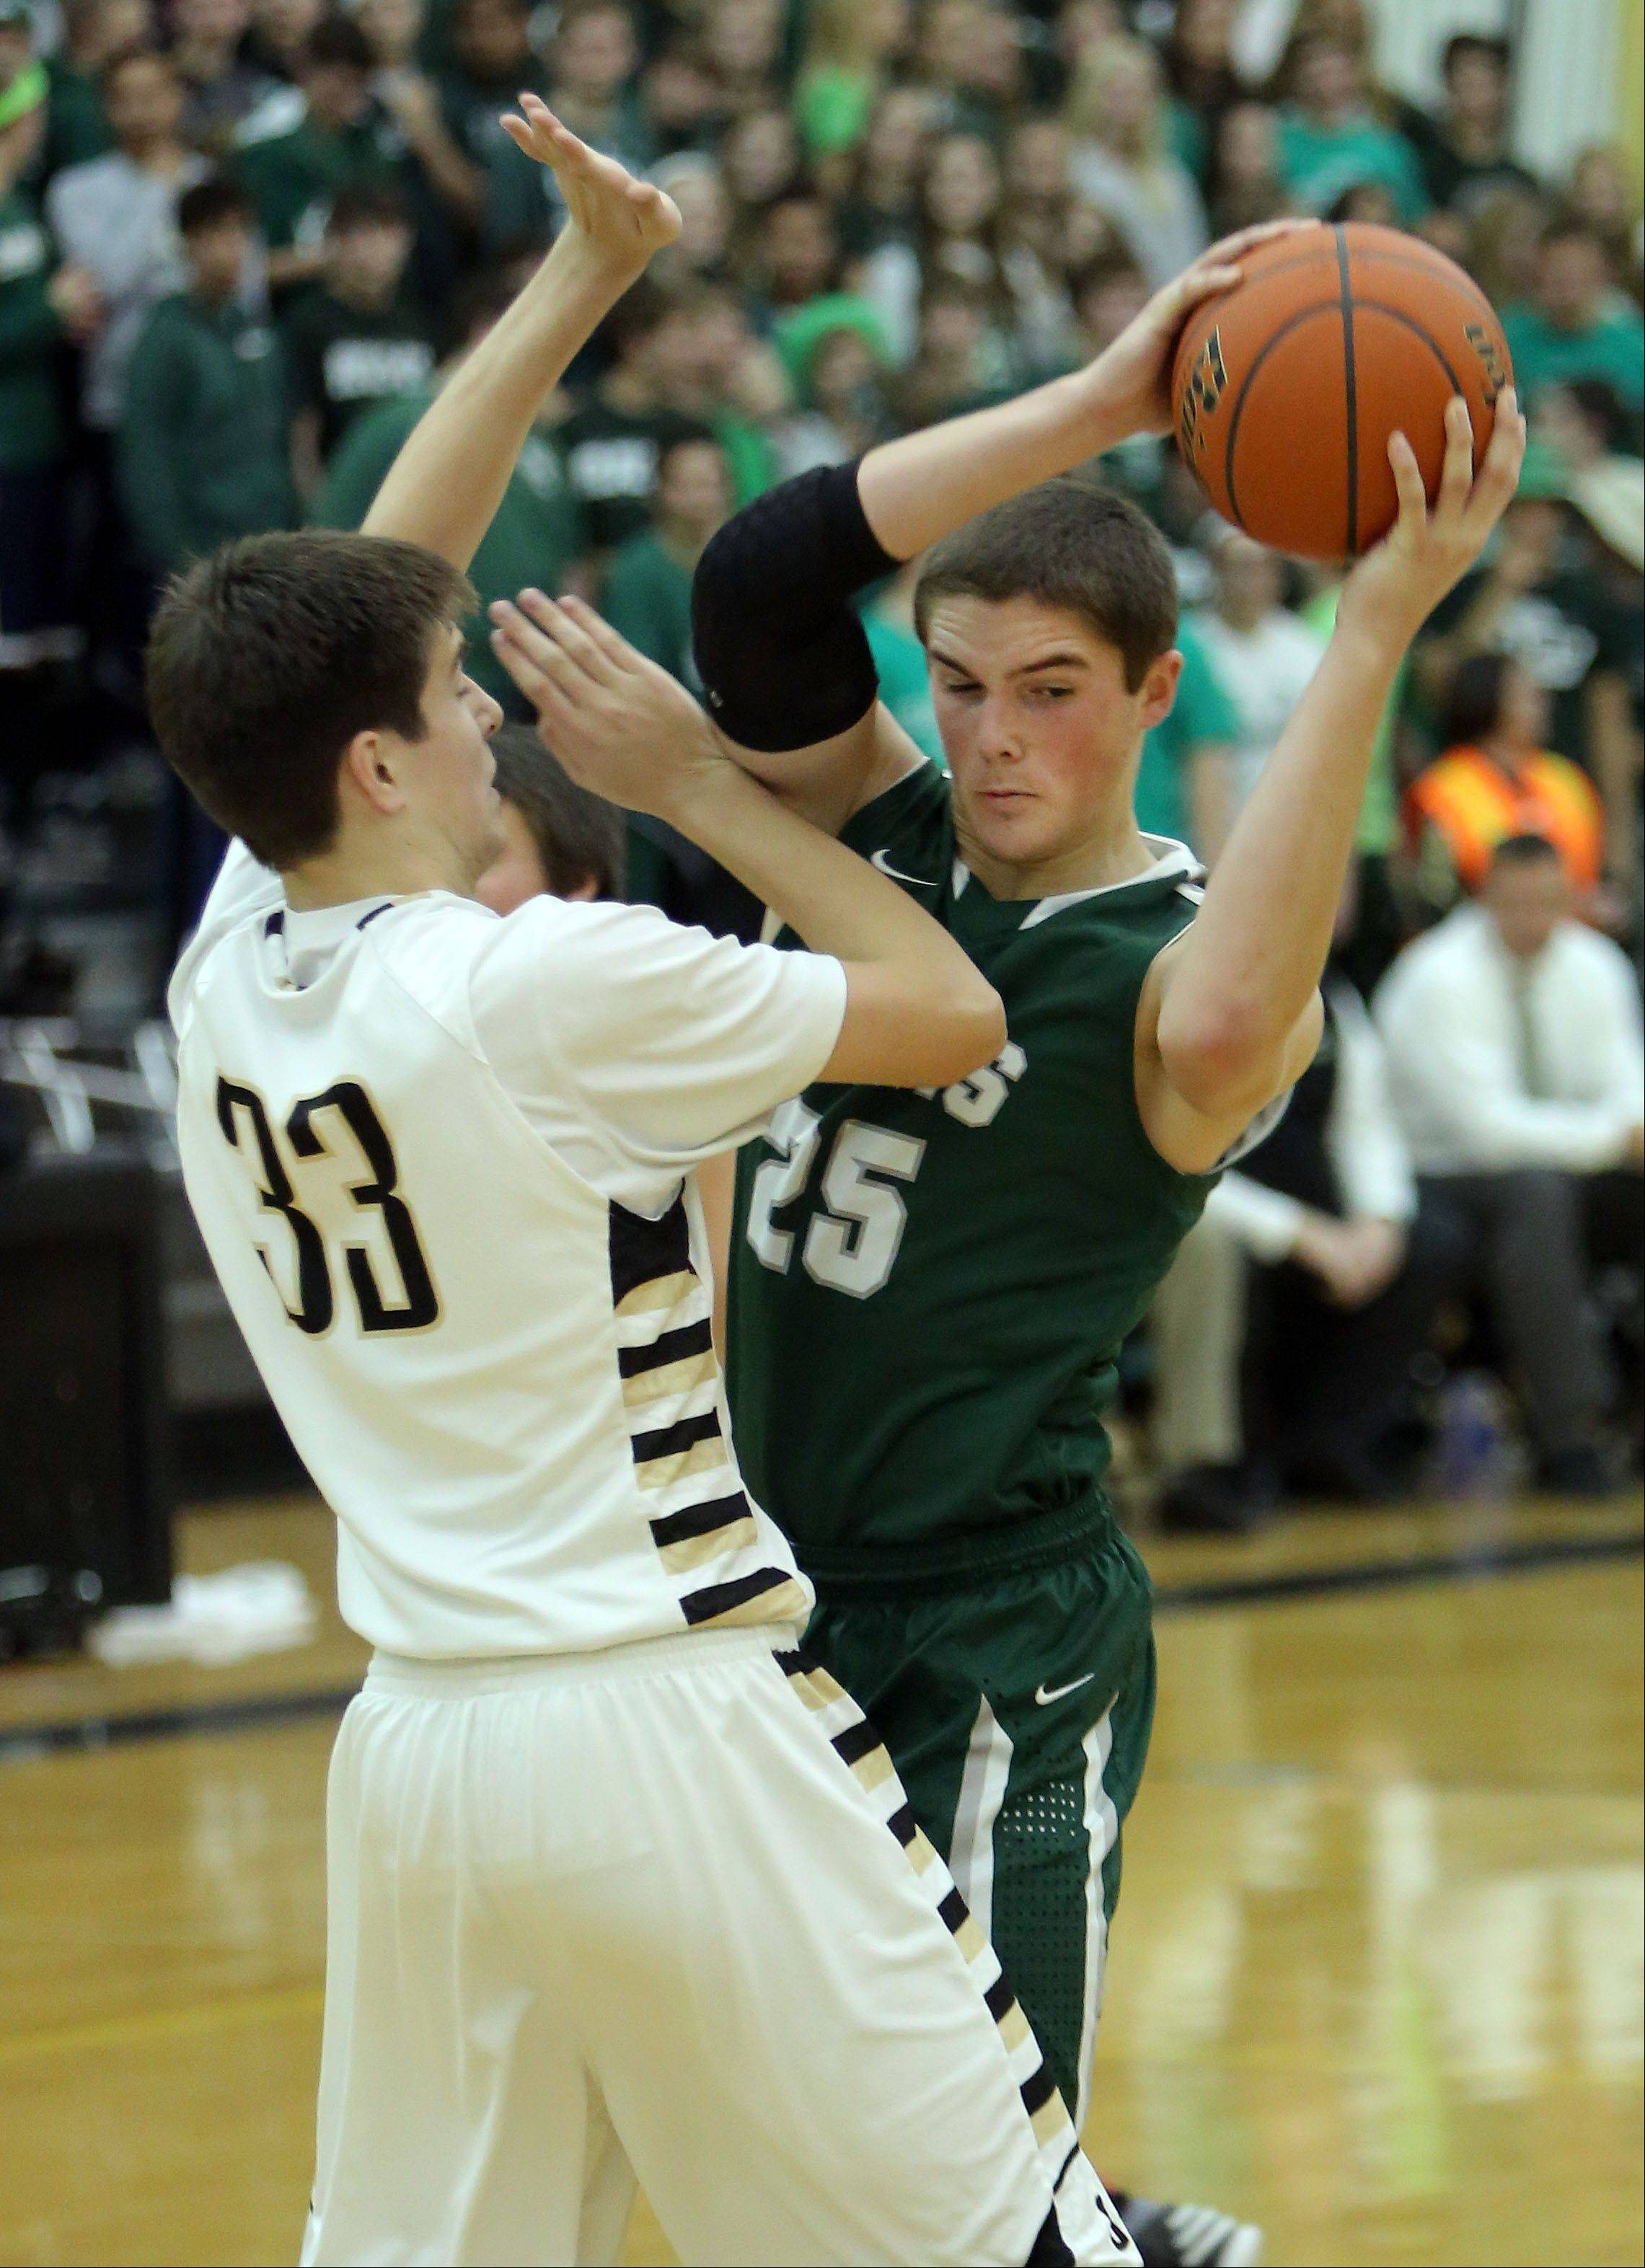 Grayslake North's Aiden Einloth, left, and Grayslake Central's Alex Lennartz battle for a rebound.